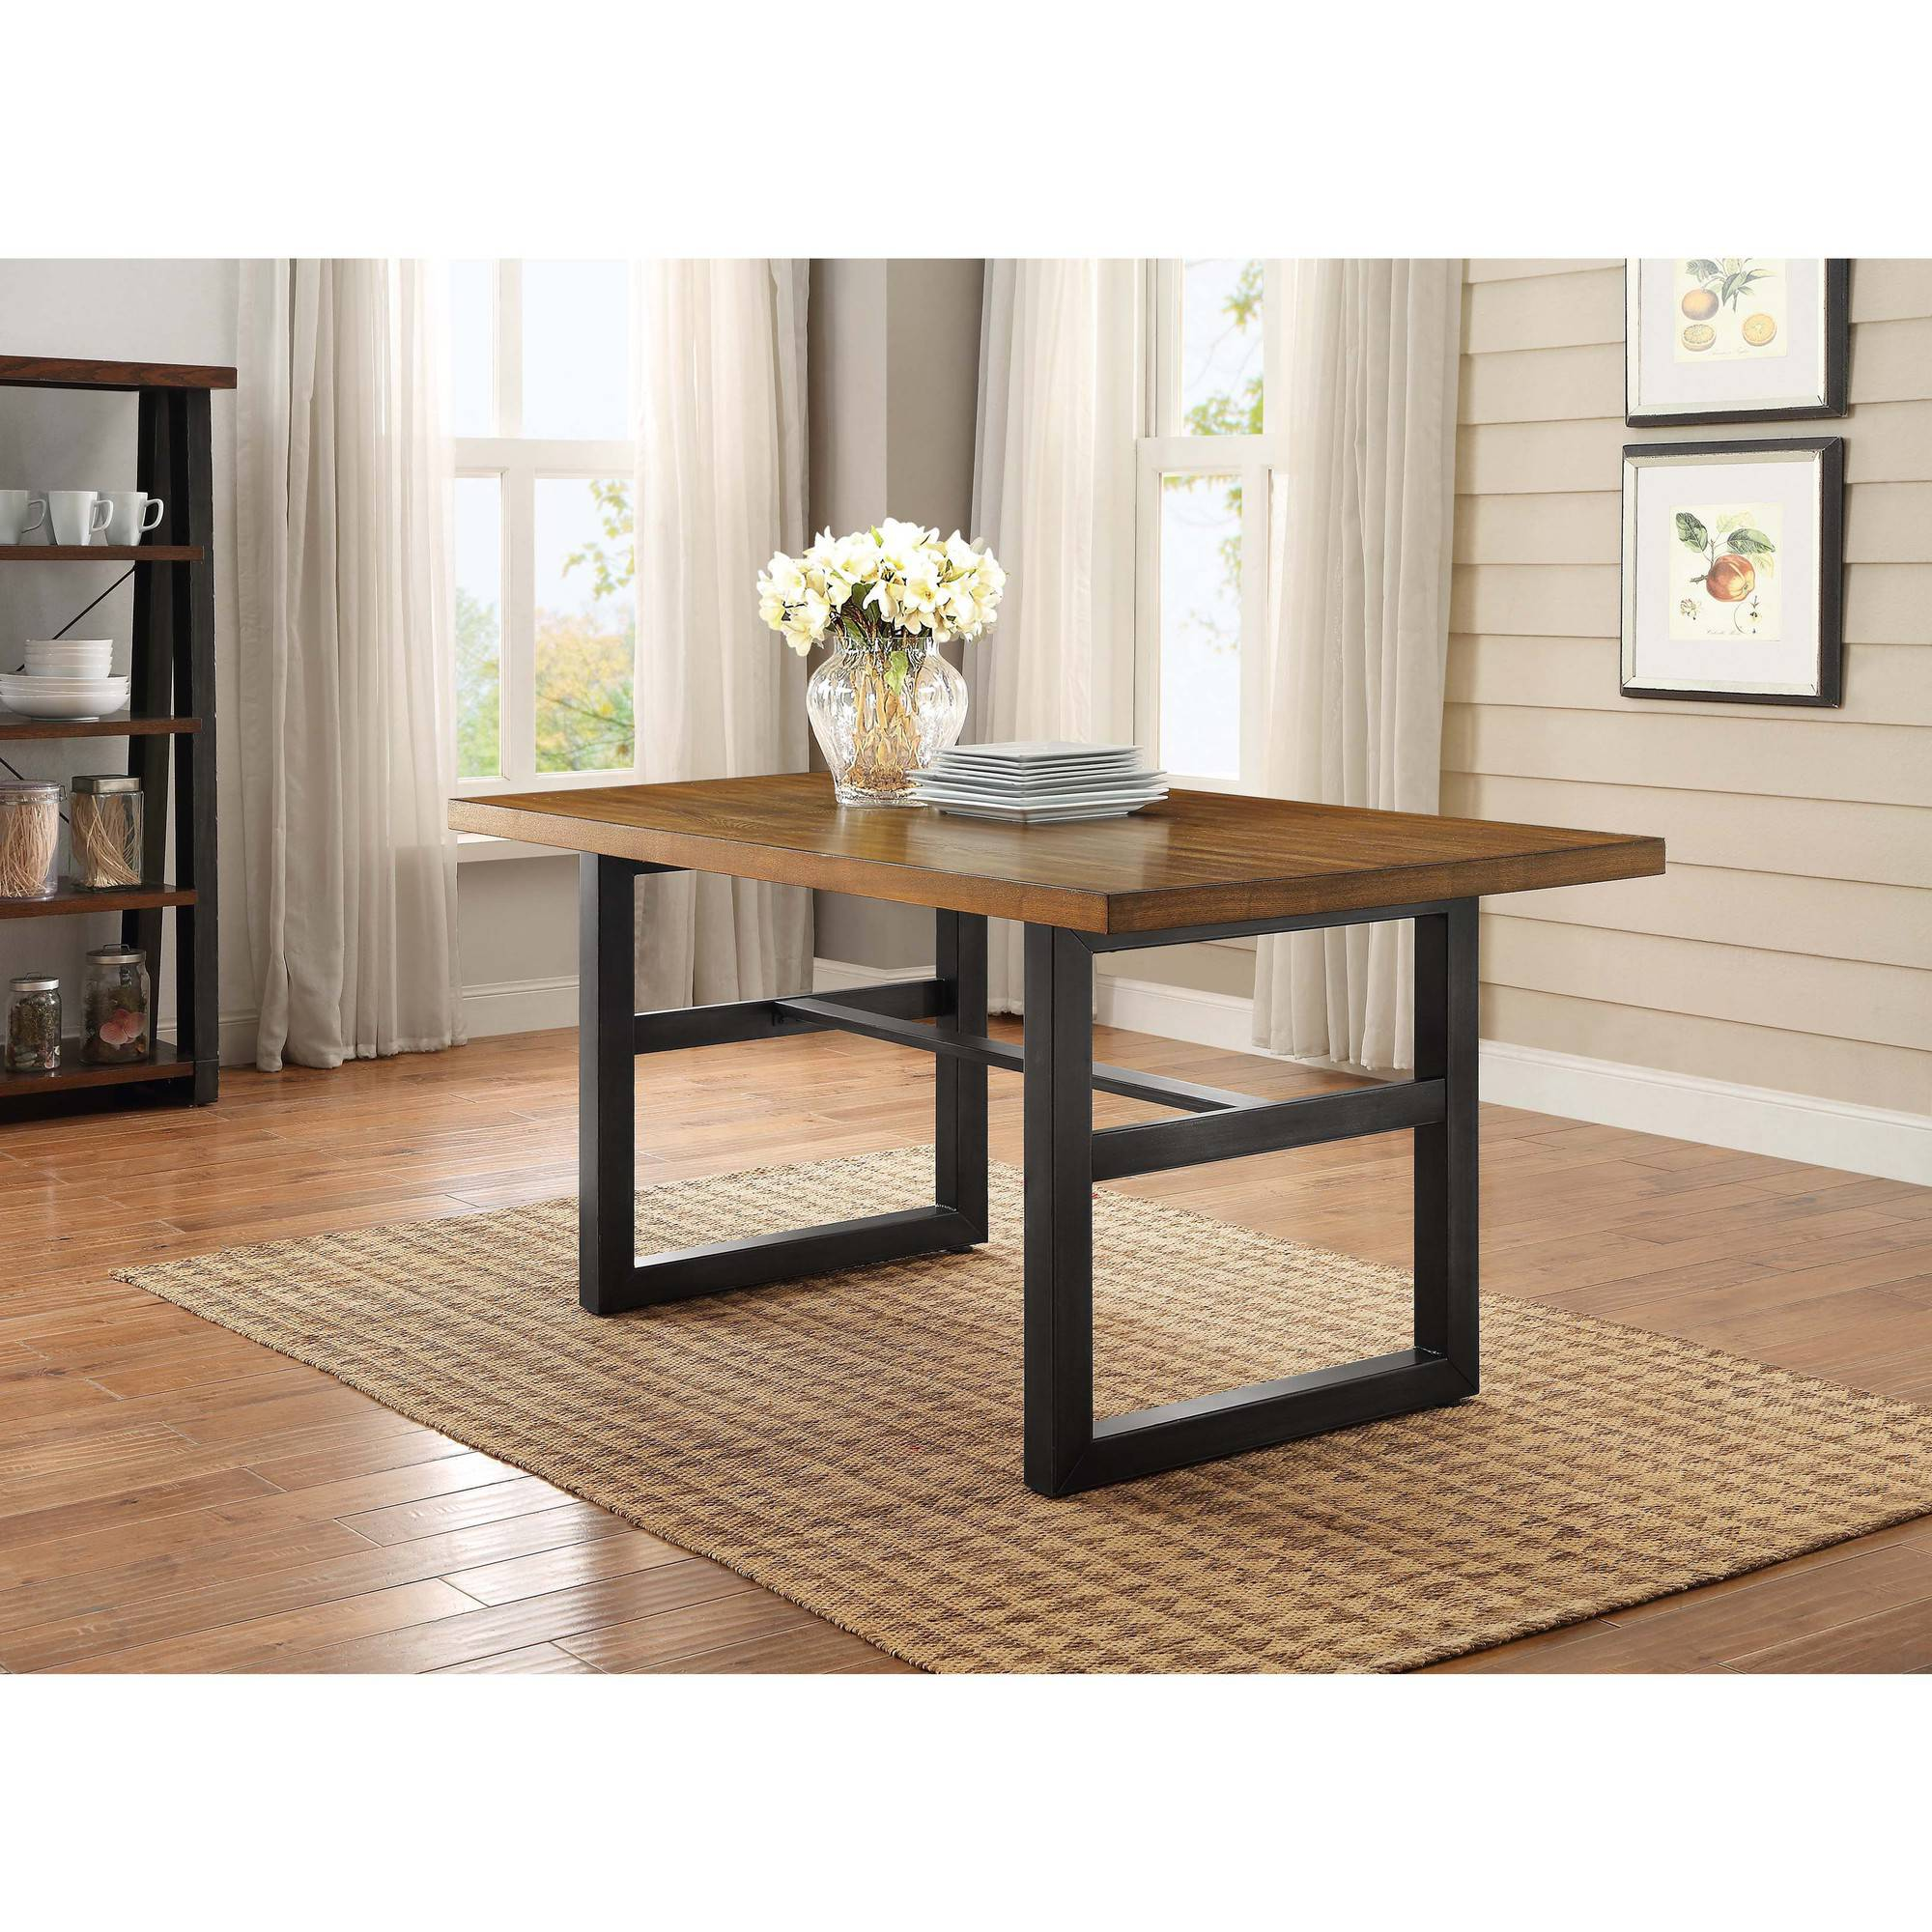 Better Homes And Gardens Kitchen Better Homes And Gardens Mercer Dining Table Vintage Oak Finish